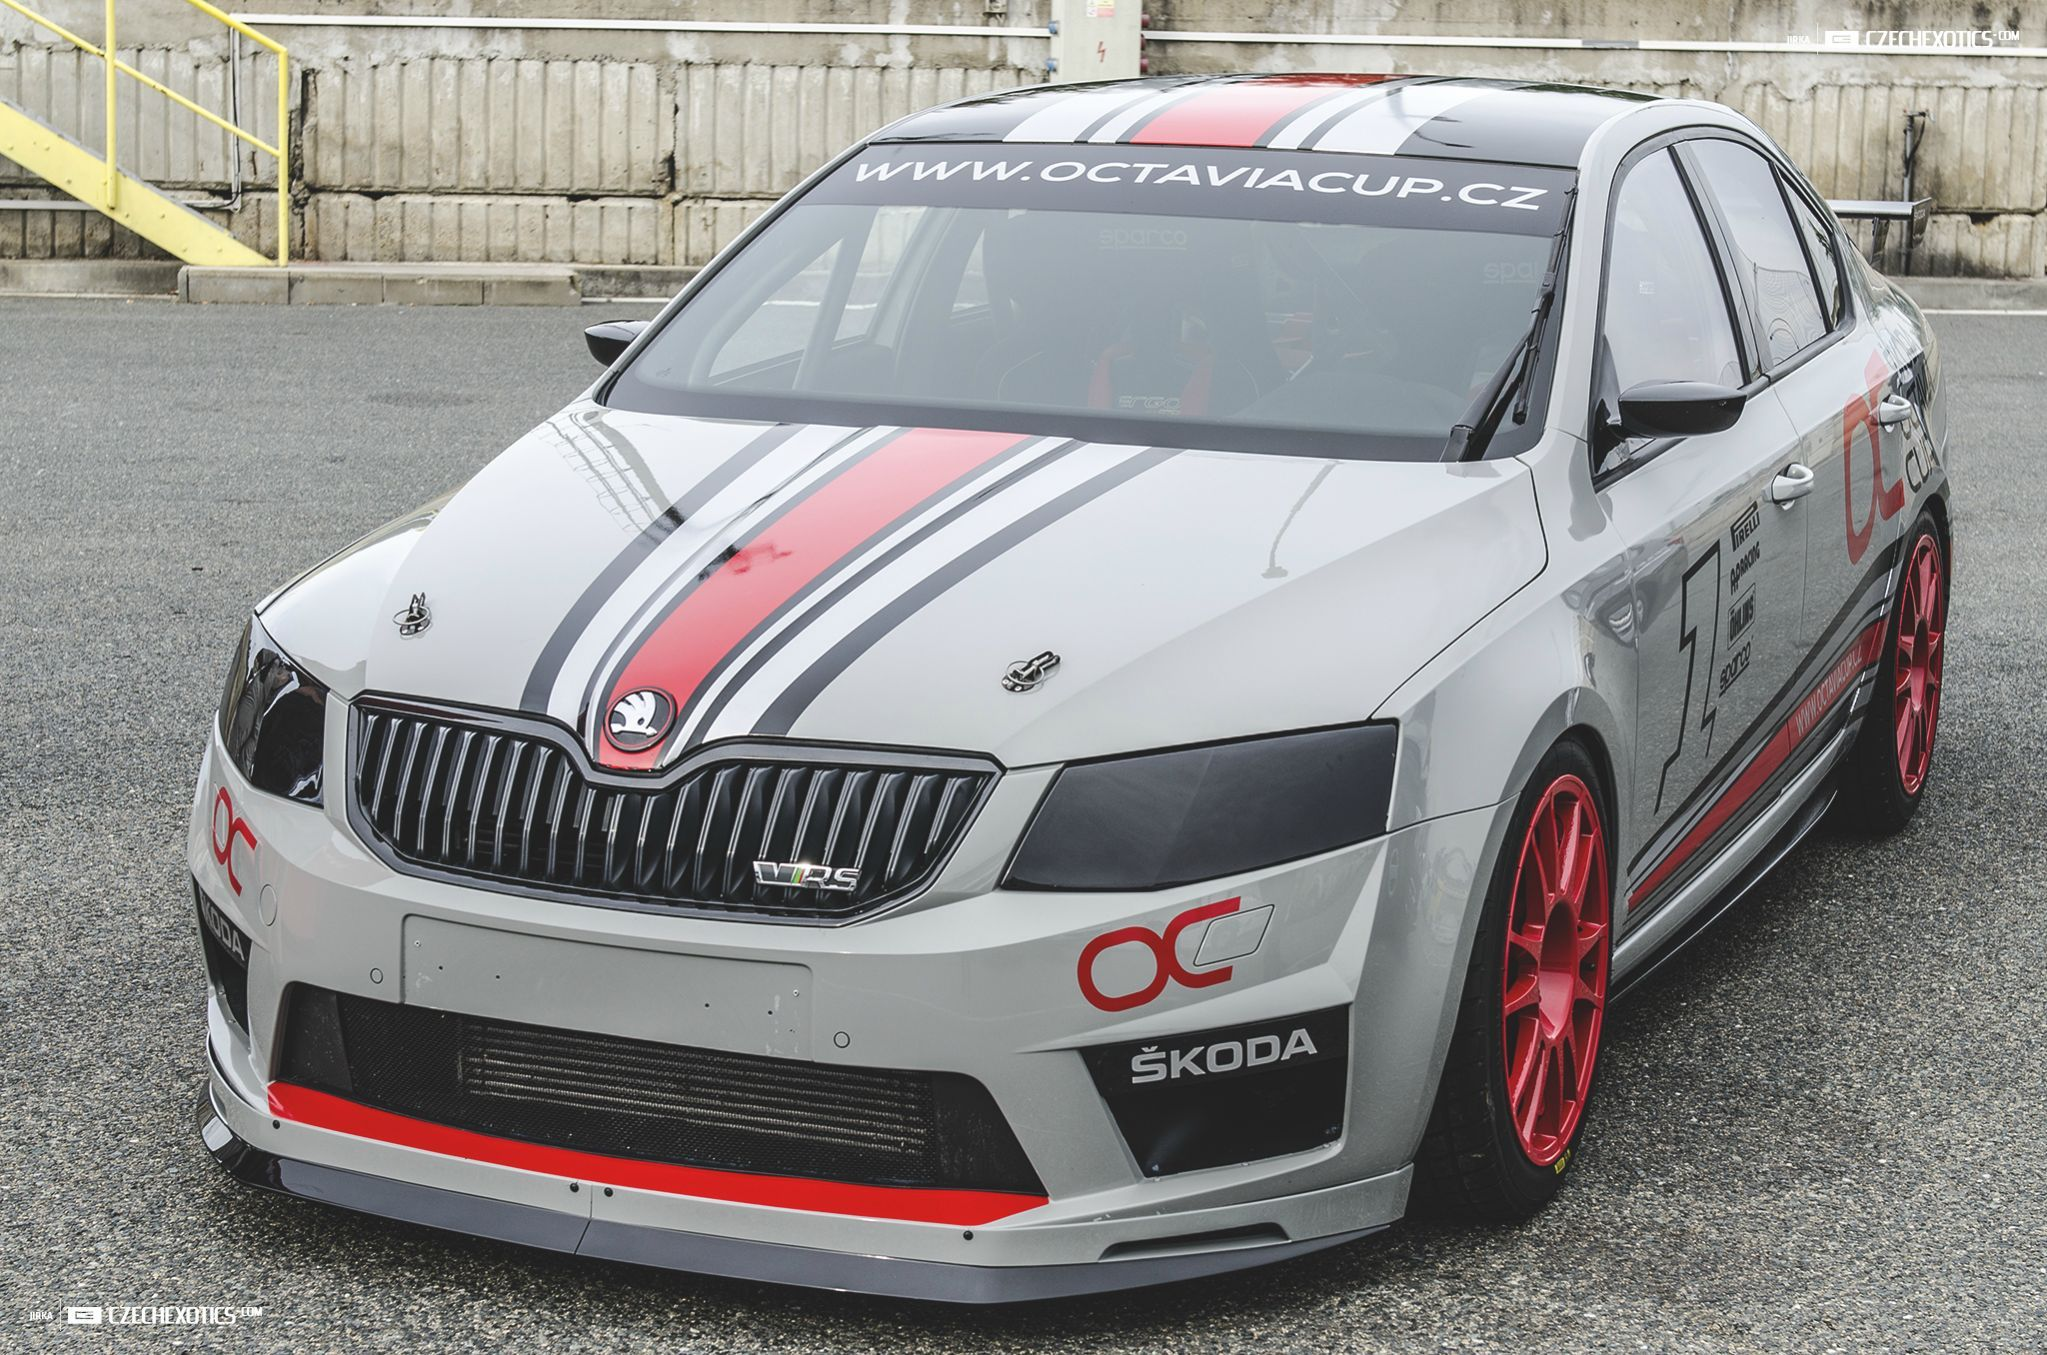 Åkoda Octavia RS Cup [OC] [2047x1355] the photo to see more